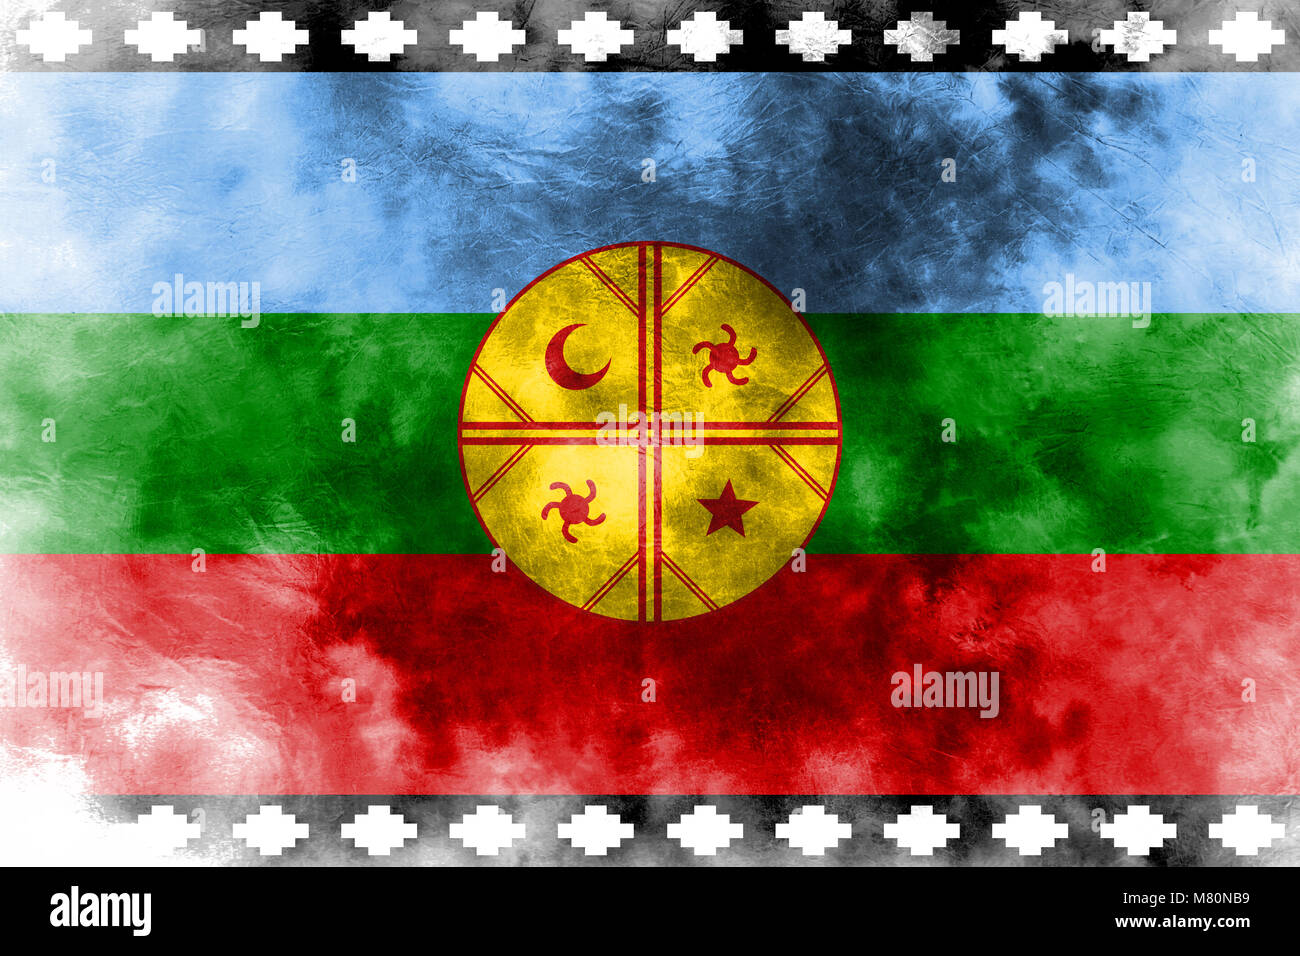 Mapuche grunge flag, Chile and Argentina dependent territory flag - Stock Image